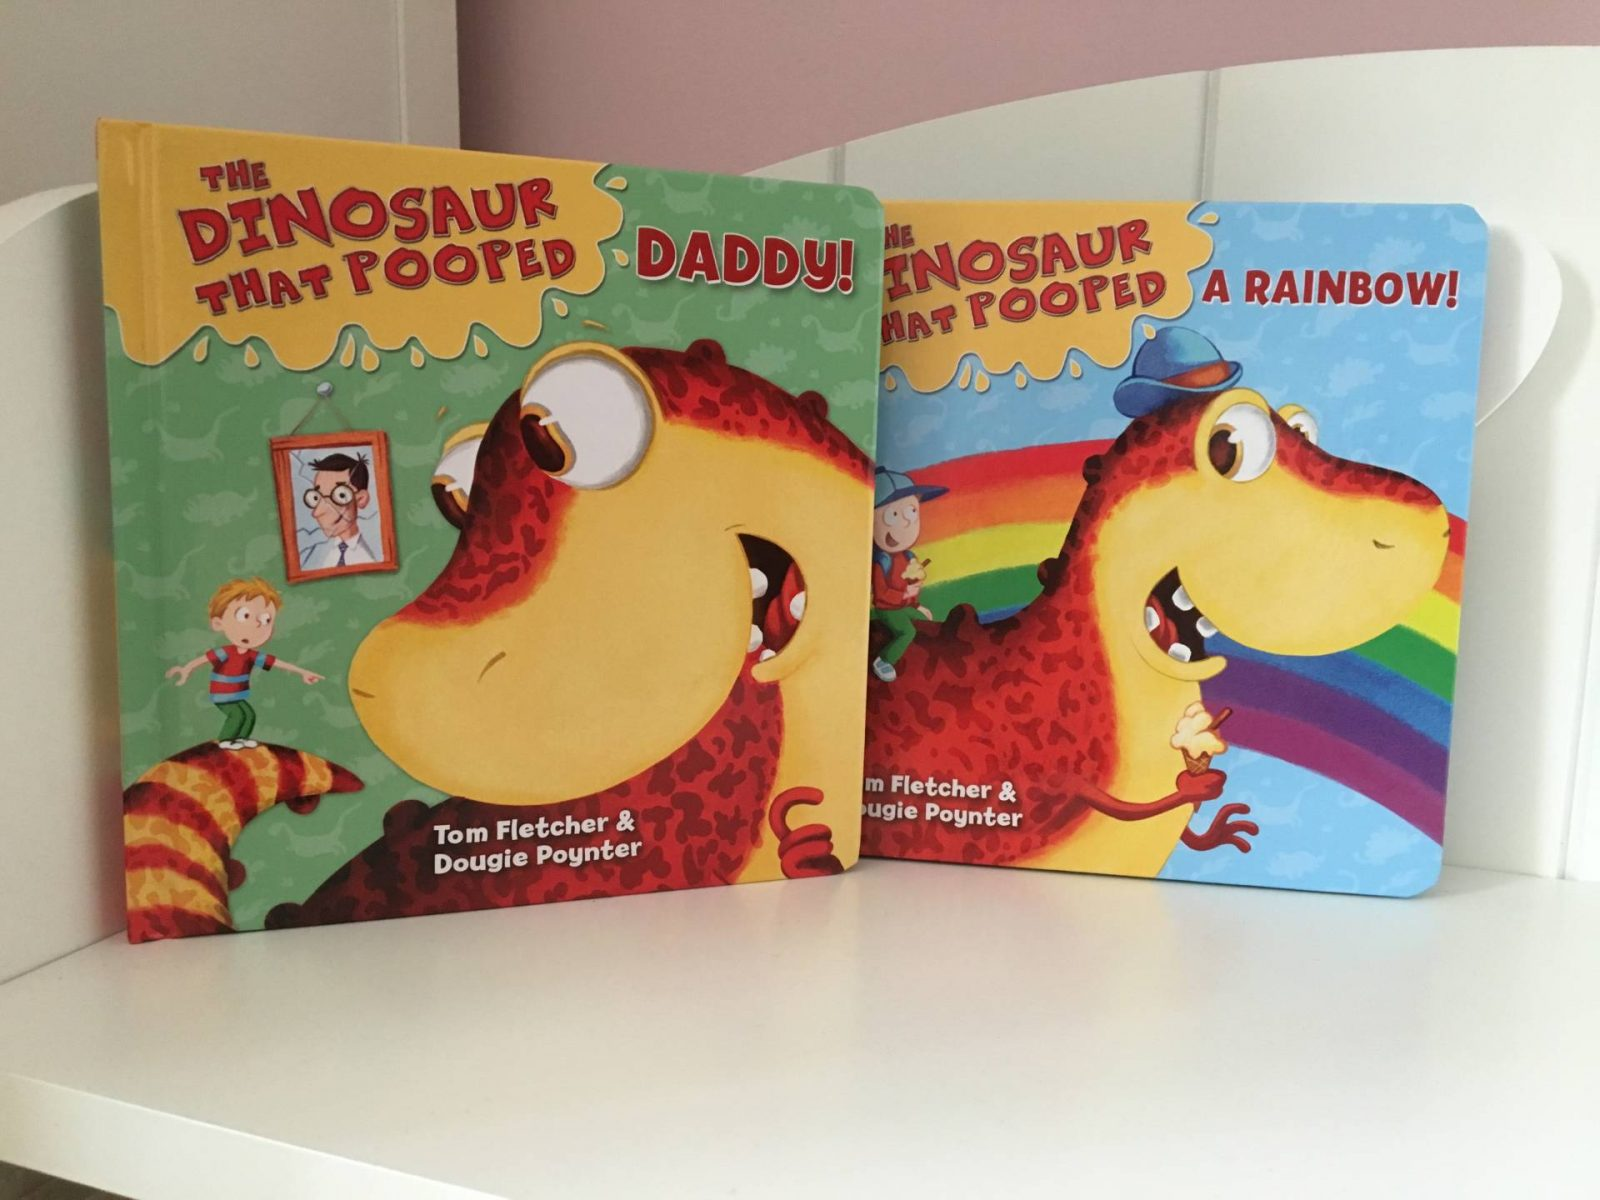 Review: The Dinosaur That Pooped Books…The McFly Boys!